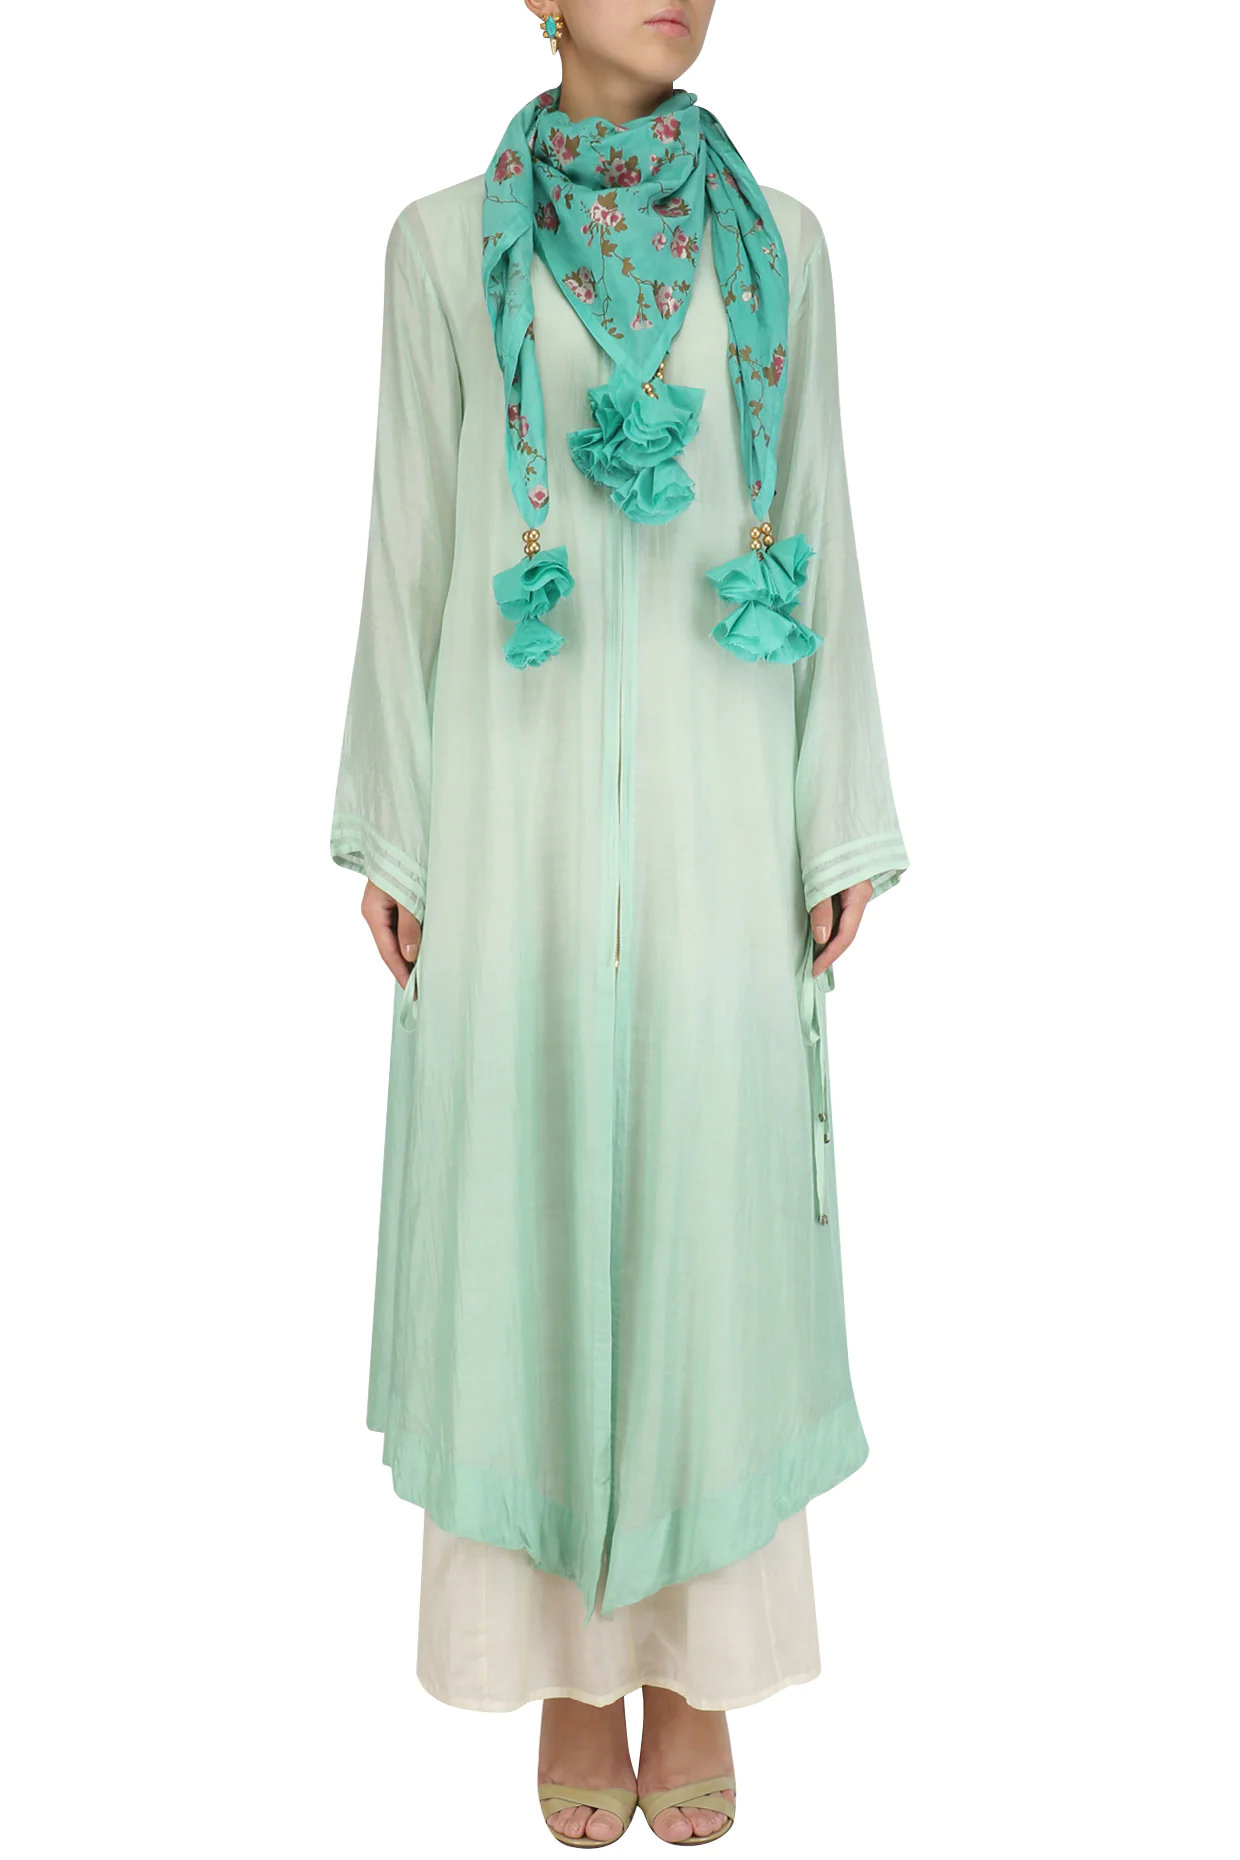 Mint Green Ombre Asymmetrical Tunic with Tassel Hanging Scarf